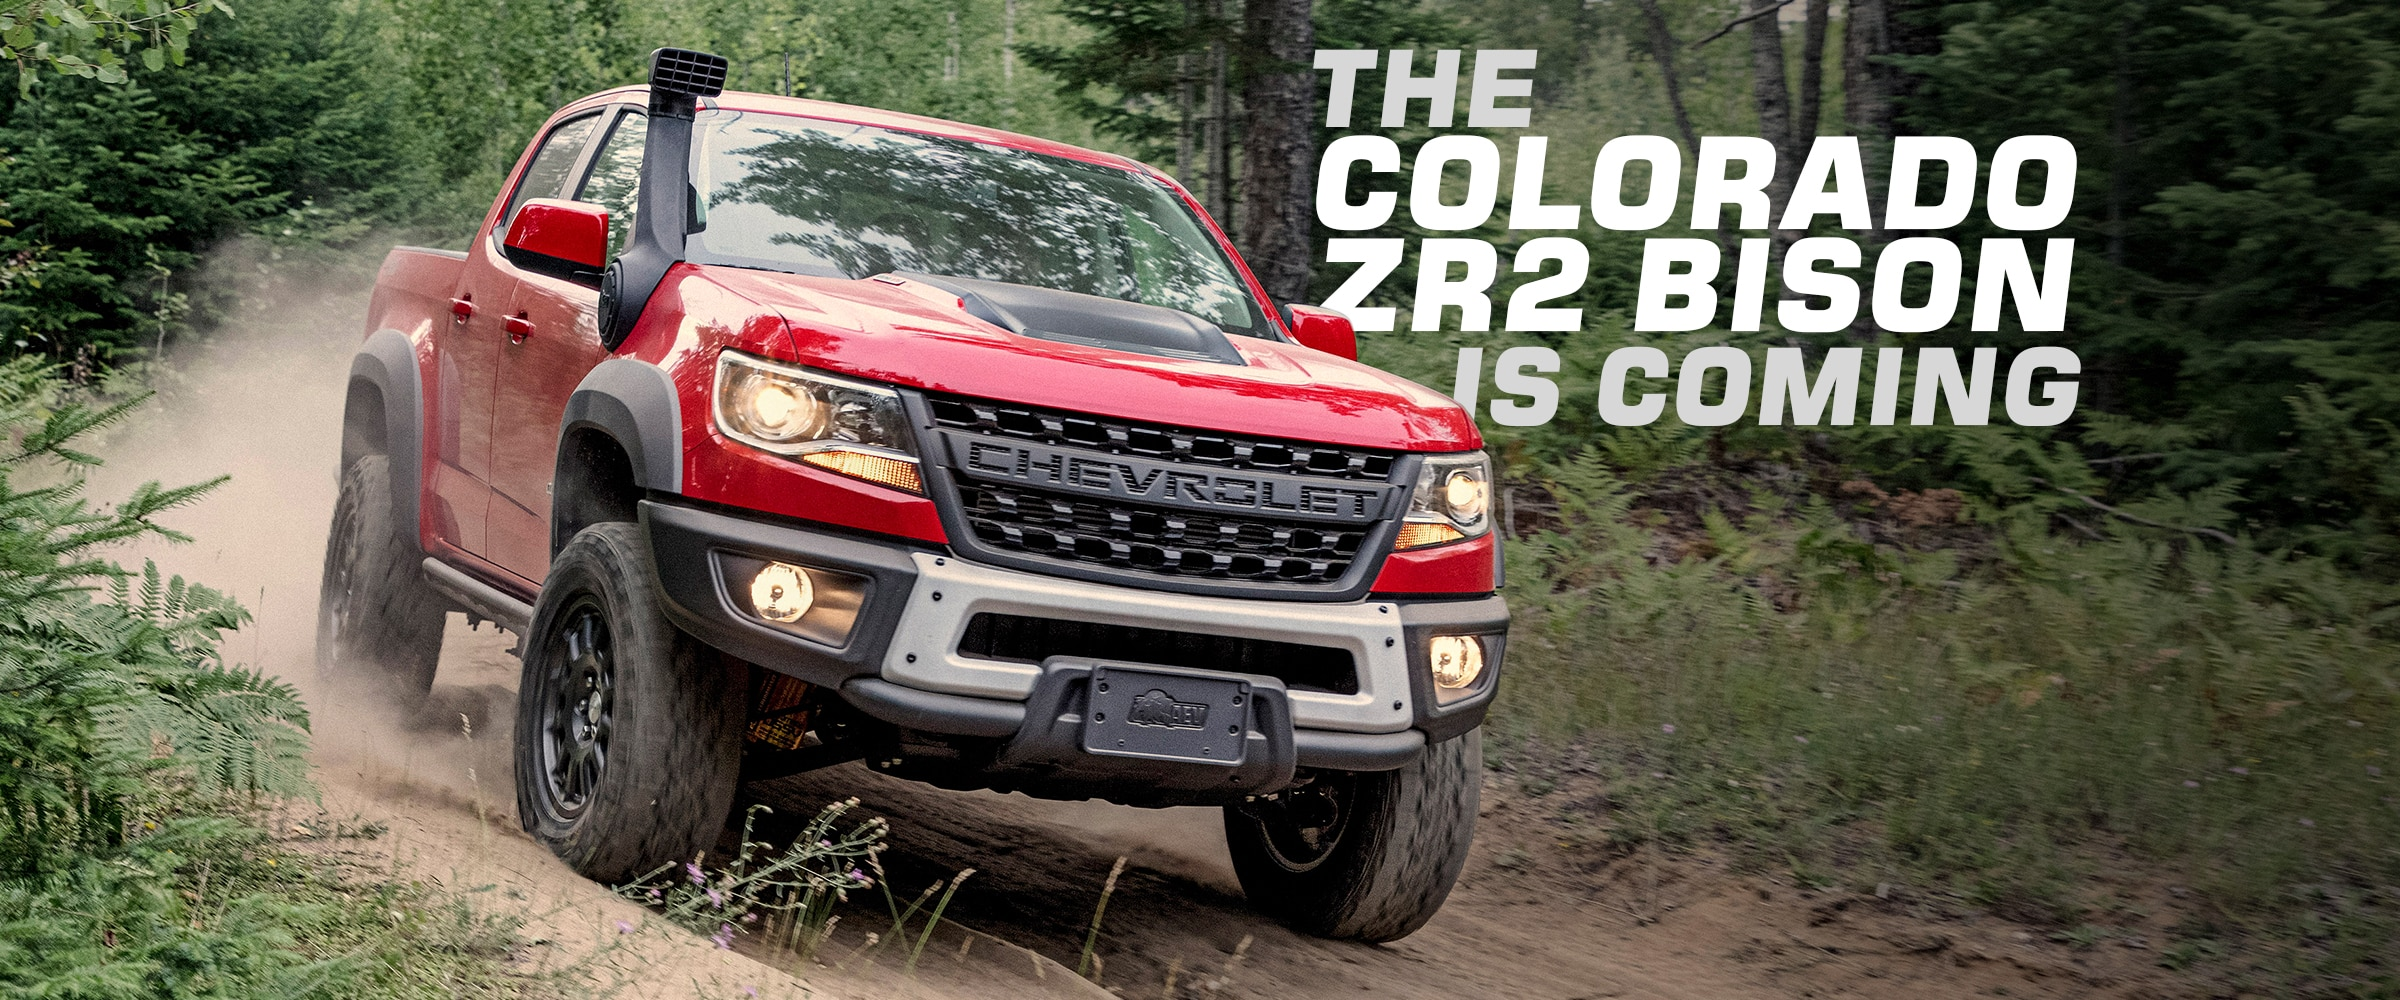 Vehicles, News, Chevrolet Performance, Trucks, Chevy Trucks, Chevrolet Colorado, Chevy Colorado, ZR2, ZR2 Bison, Colorado ZR2 Bison, Chevy Colorado ZR2 Bison, Chevrolet Colorado ZR2 Bison